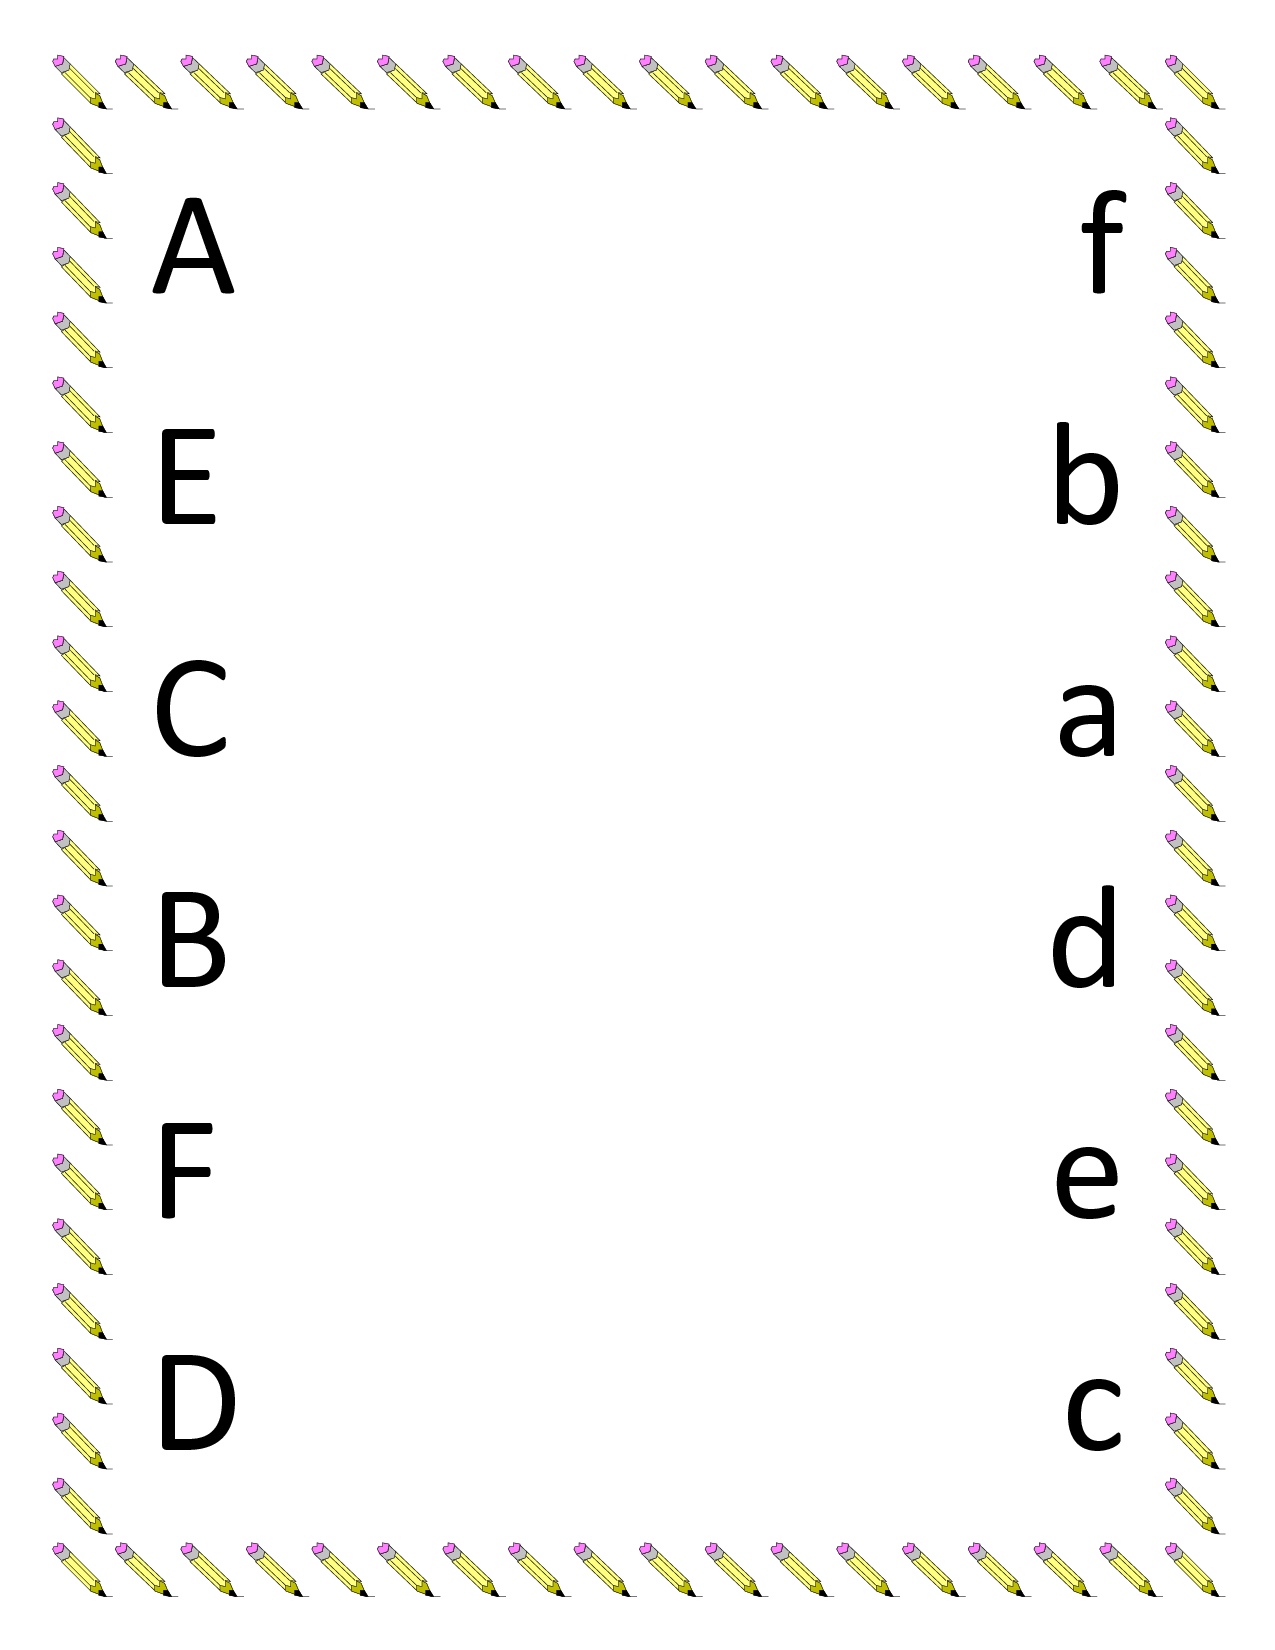 kindergarten worksheets Preschool worksheets – Free Worksheets for Preschool